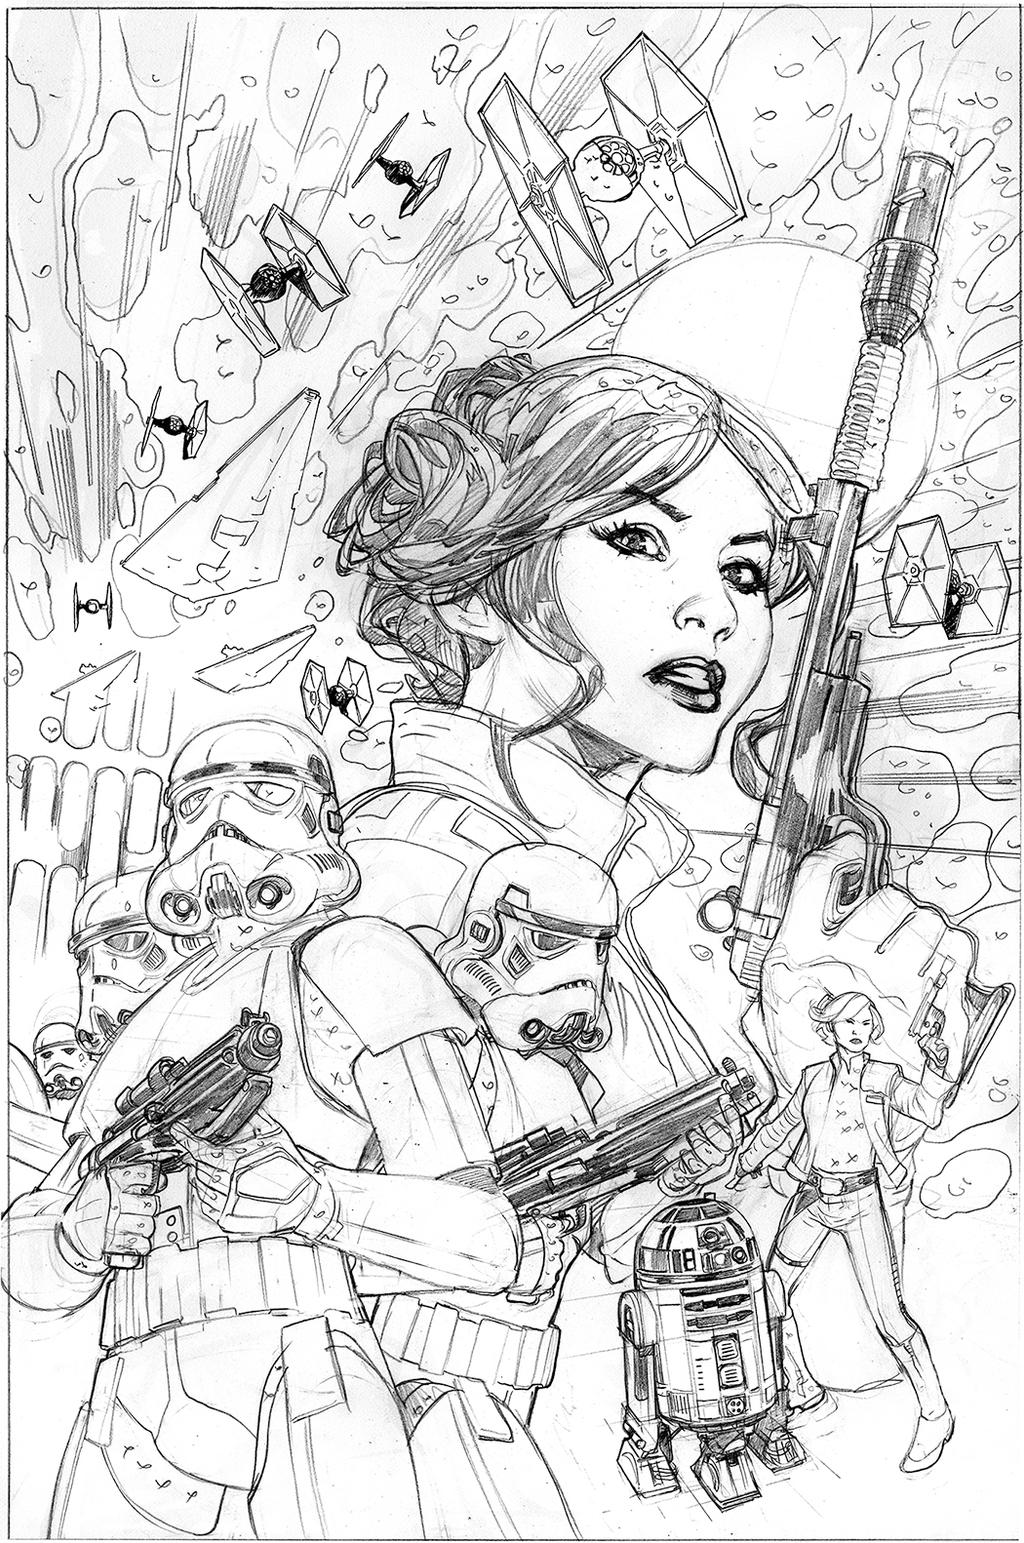 pencil coloring page - star wars princess leia 4 cover pencils by terrydodson